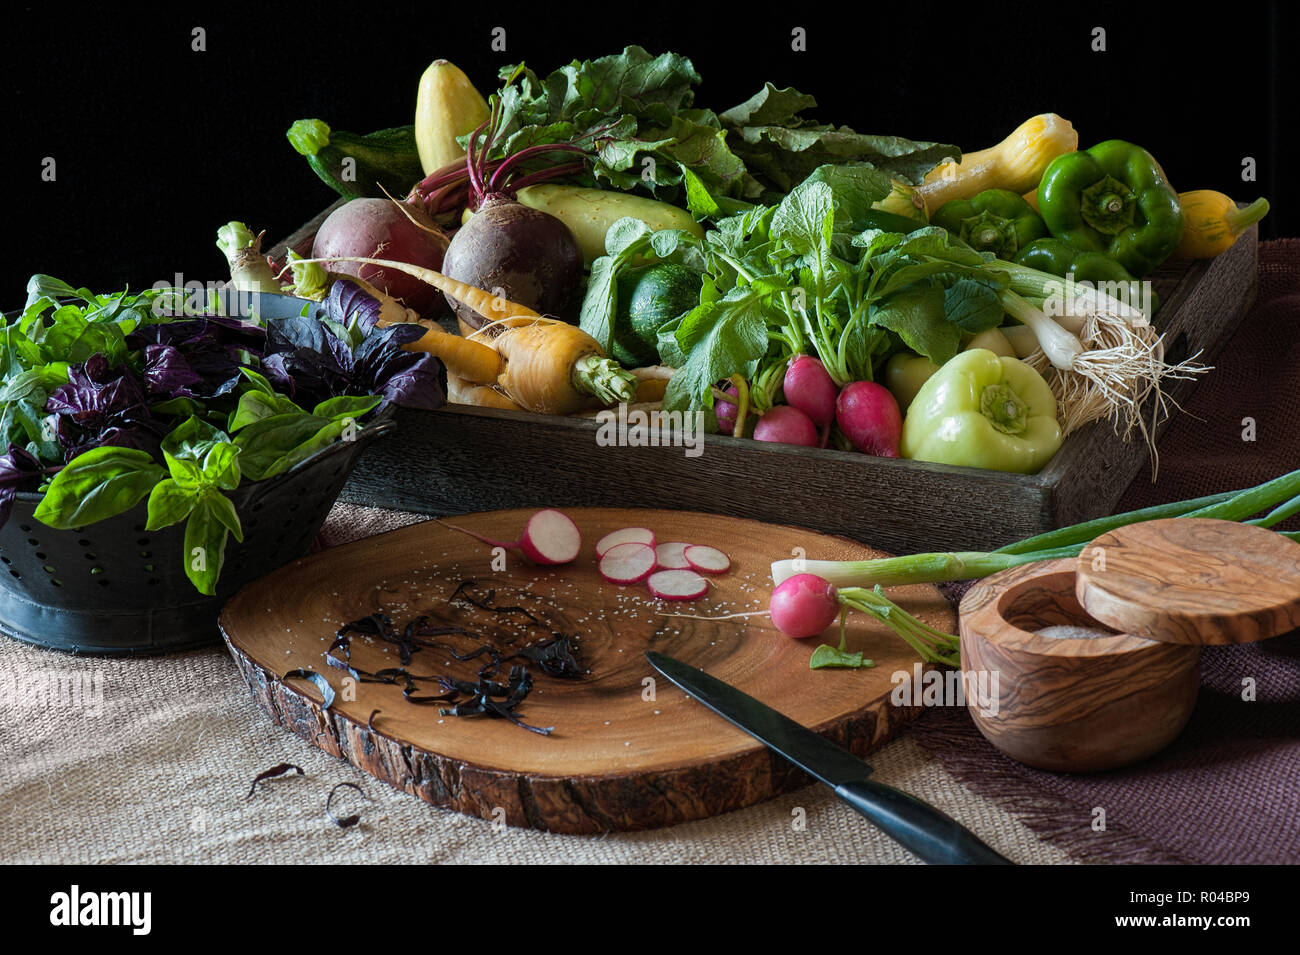 Farm-fresh produce in a kitchen scene complete with wood cutting board and salt ewer. Stock Photo